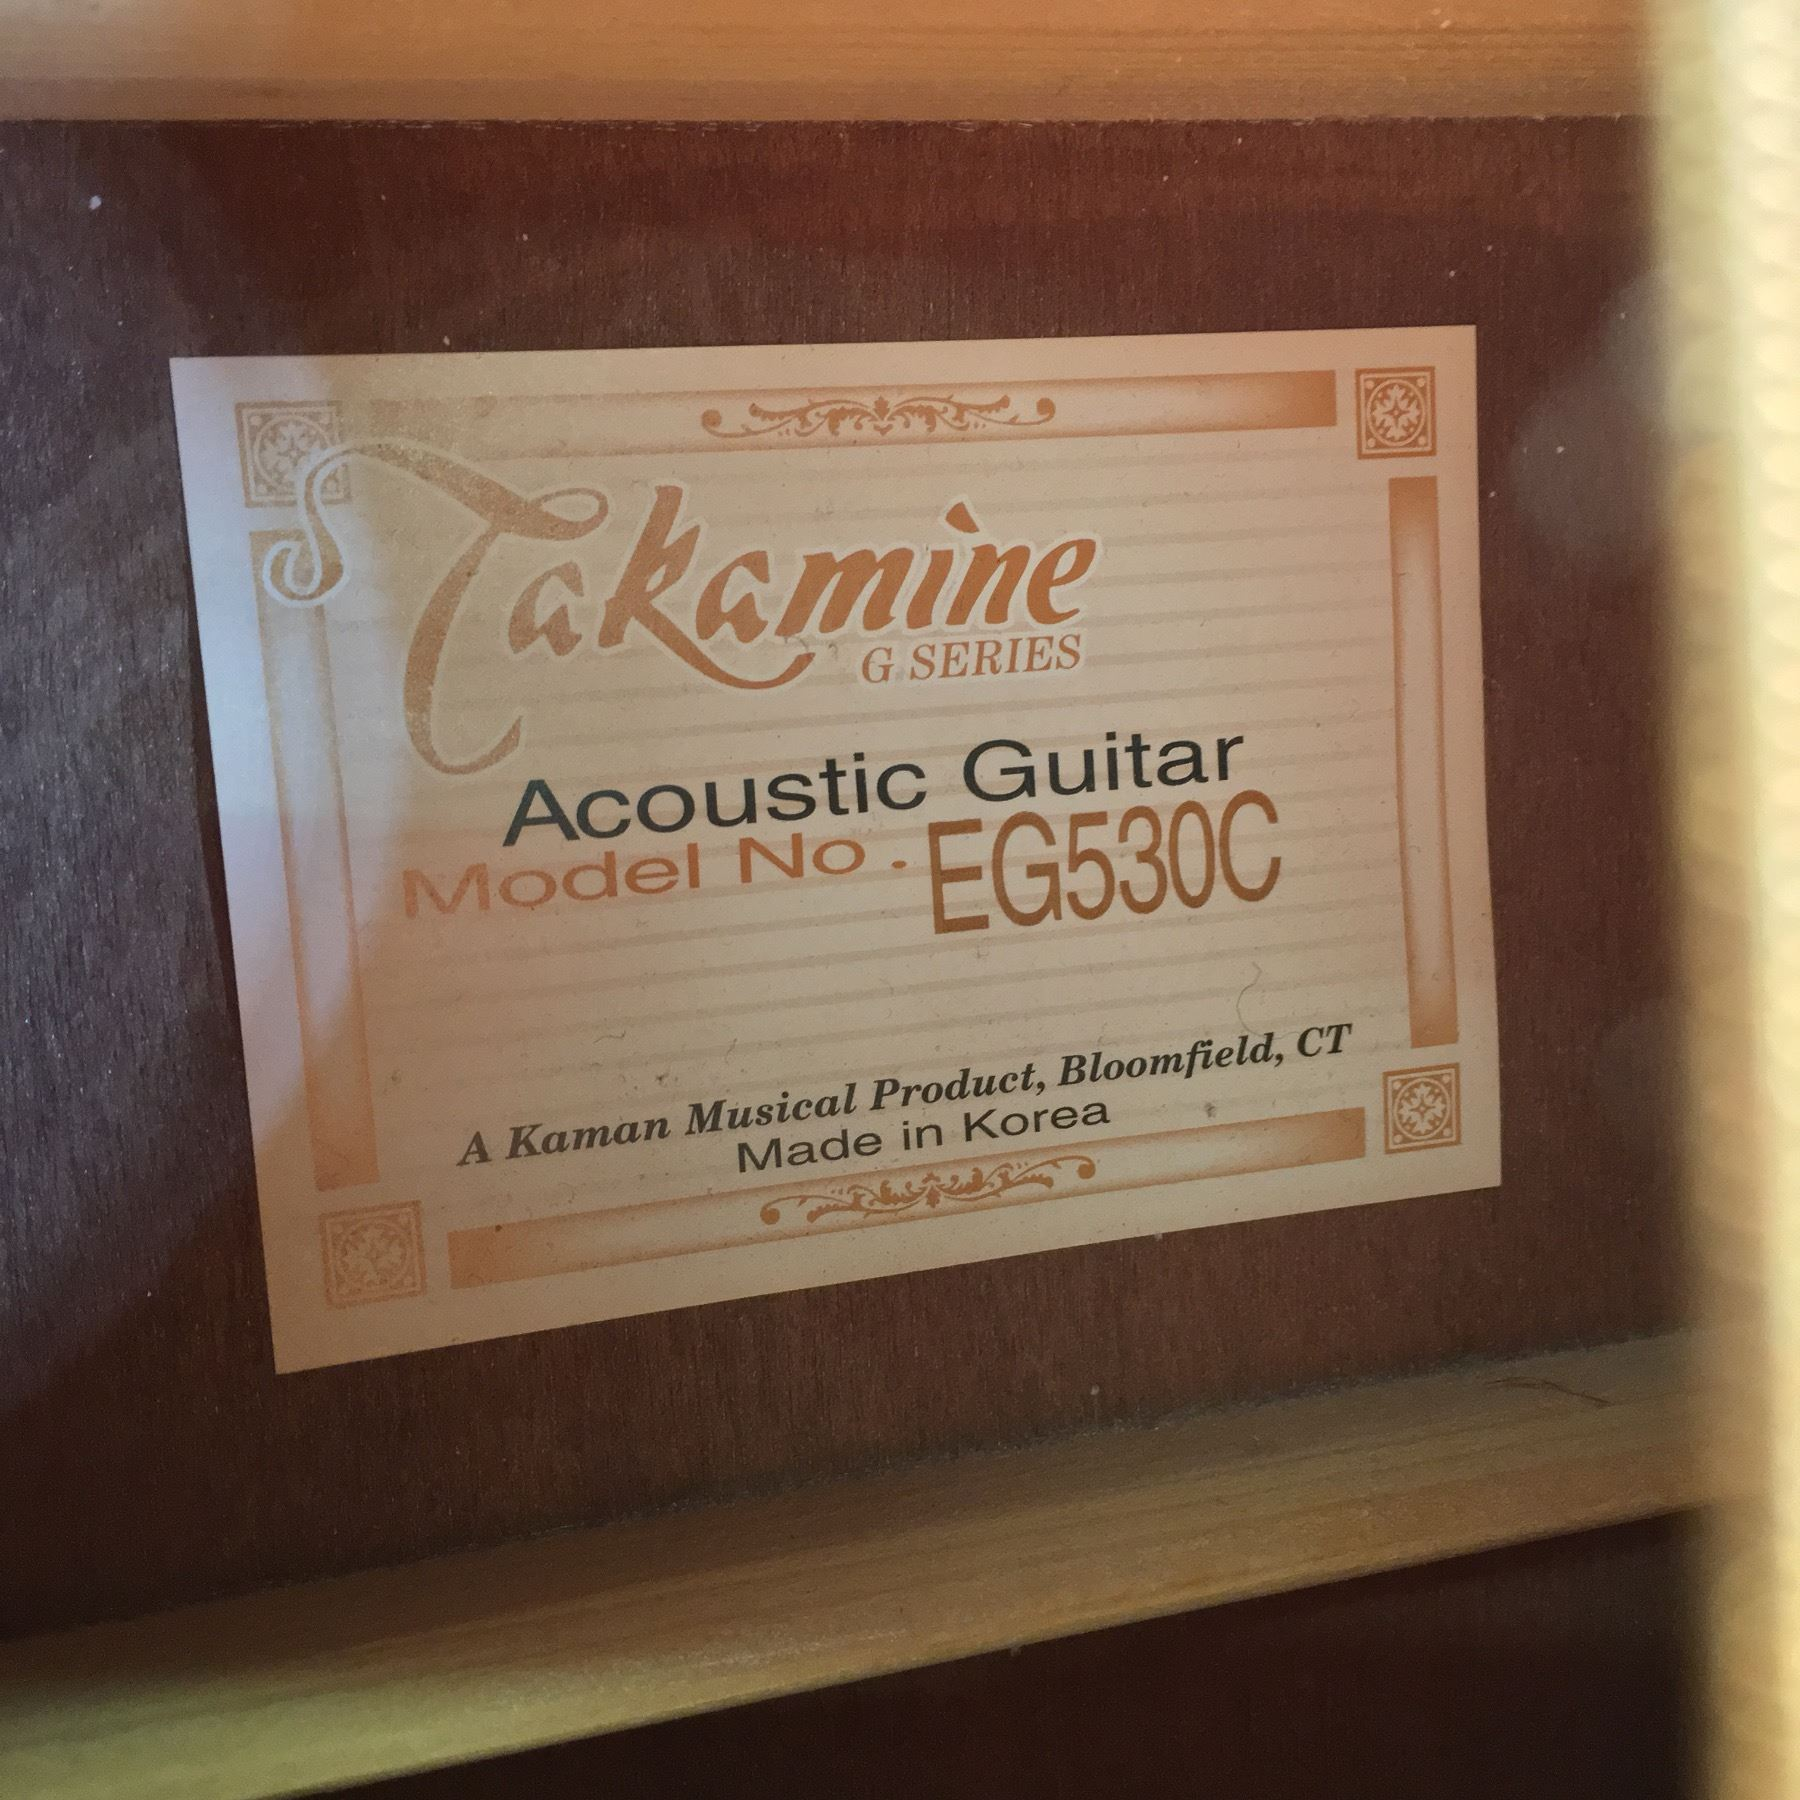 Information on a guitar - Takamine